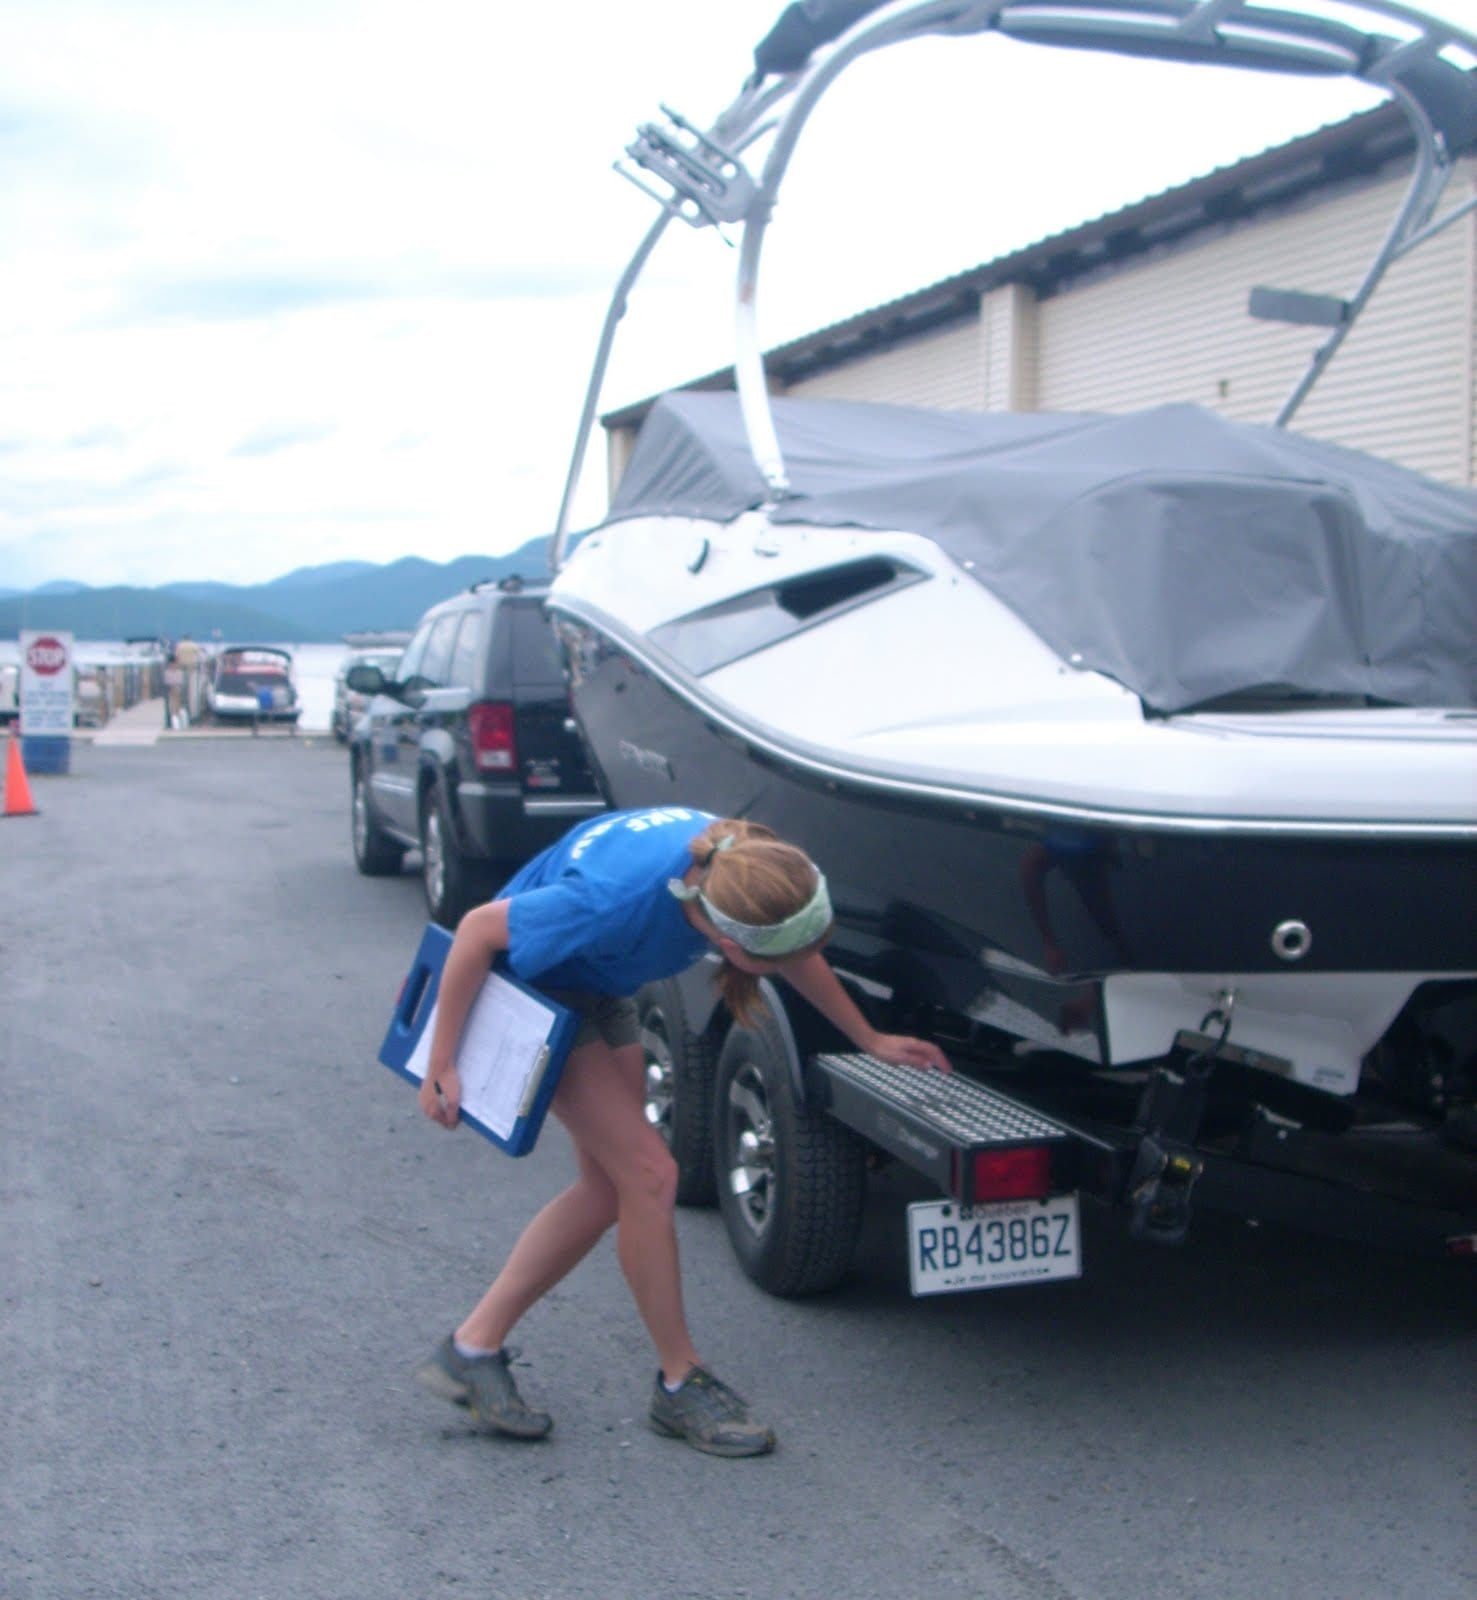 LGA Lake Steward Monika LaPlante inspects a boat in 2010 at the Norowal Marina